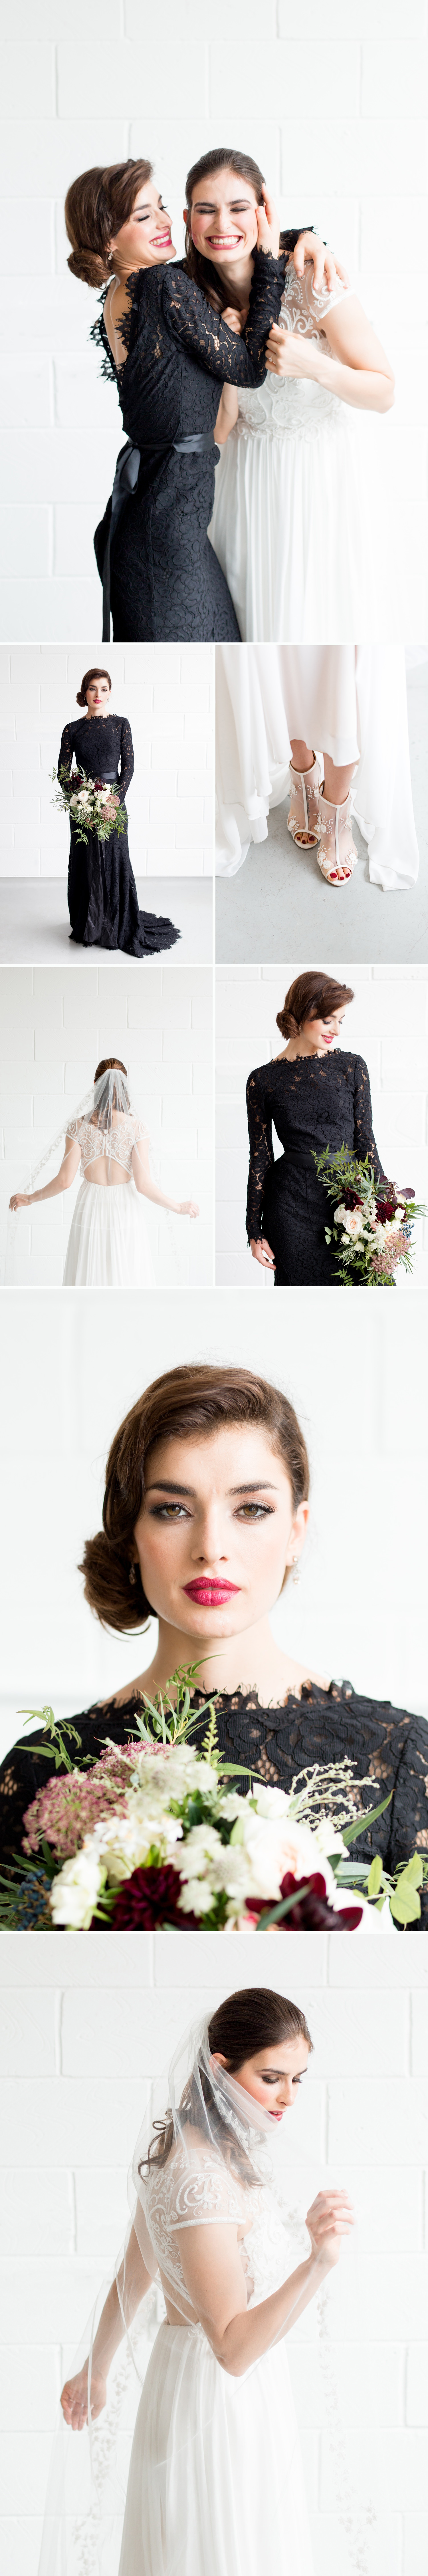 London Warehouse Wedding 7 - a bride in a beaded dress and veil with a bridesmaid in a black lace dress